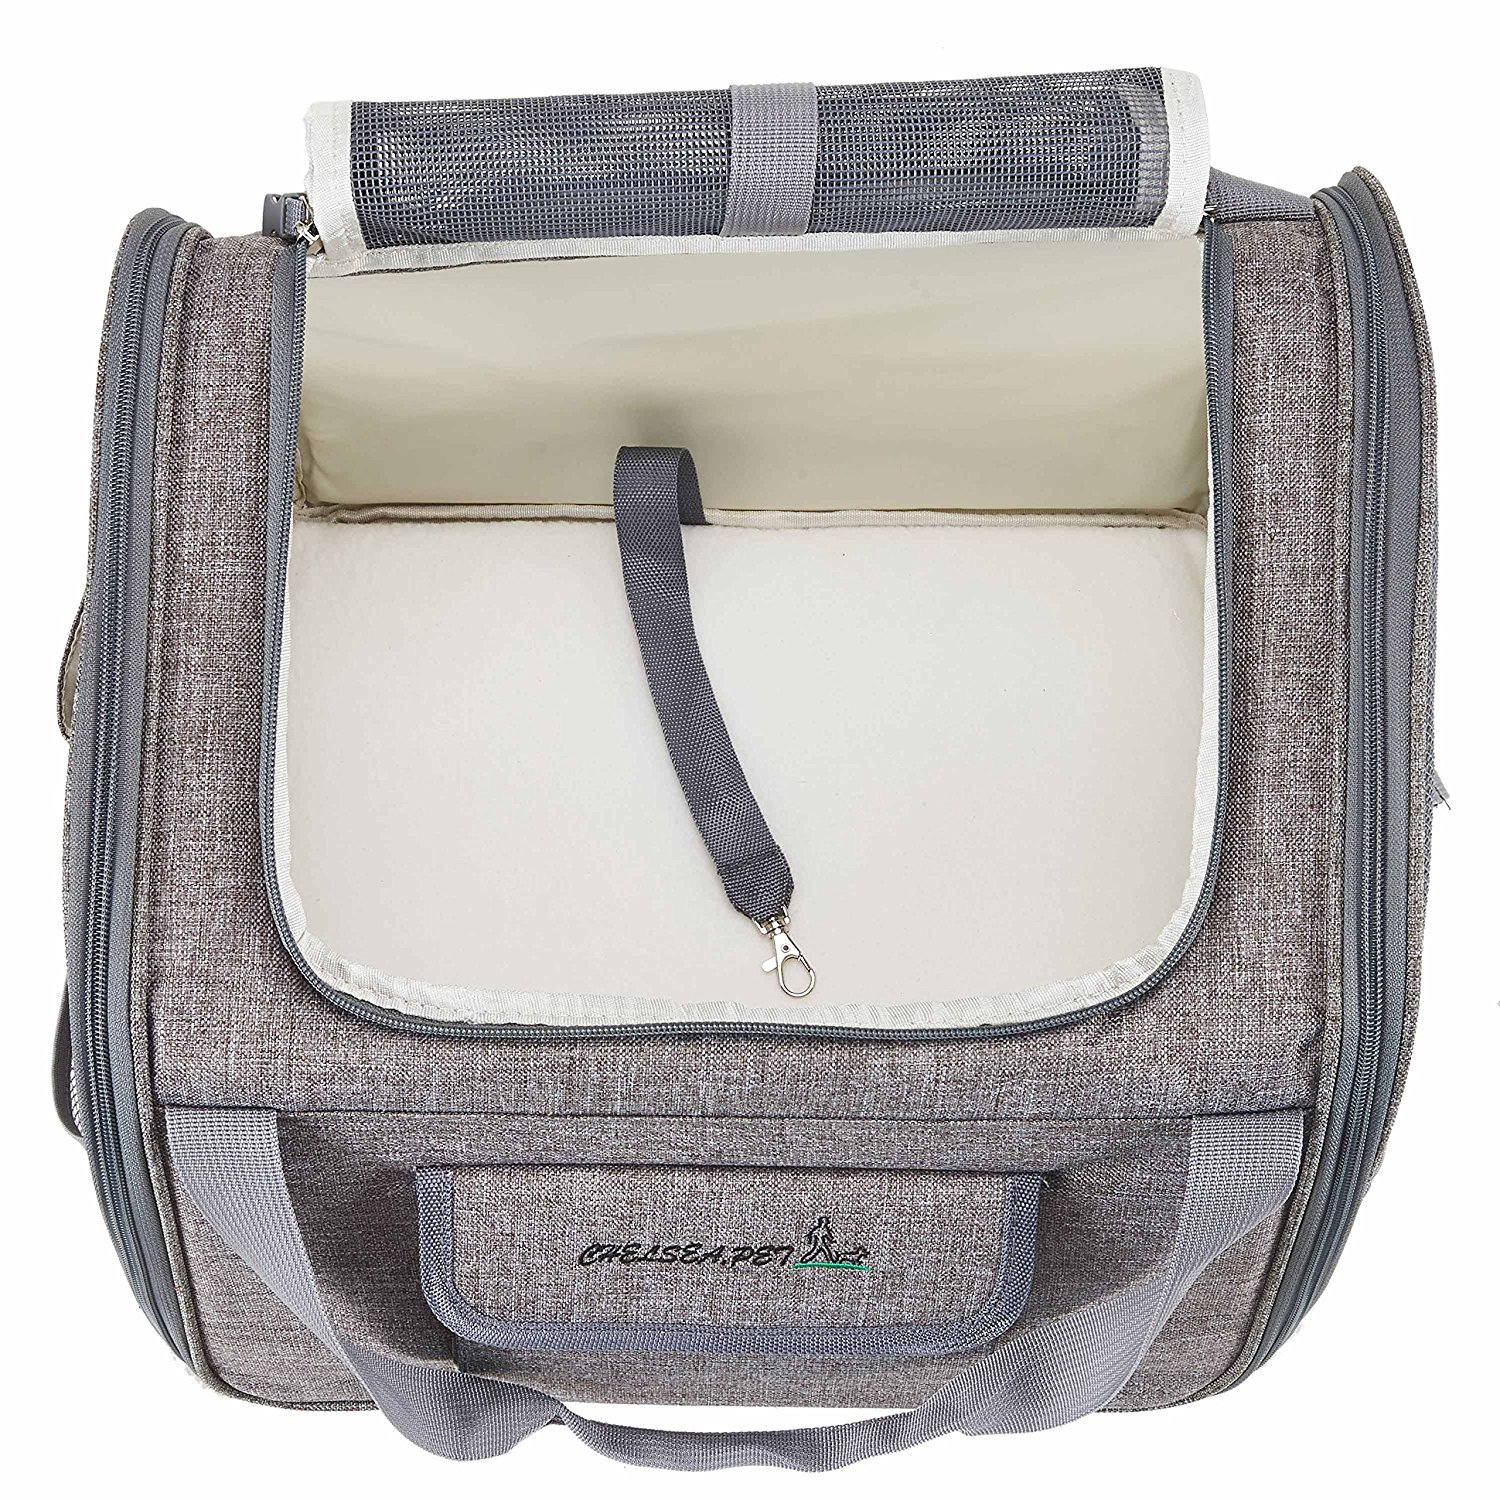 Decoroom Pet Car Seat Carrier Dog Cat Lookout Booster Seat Soft-Sided Foldable Puppy Travel Bag Light Gray by Decoroom (Image #6)